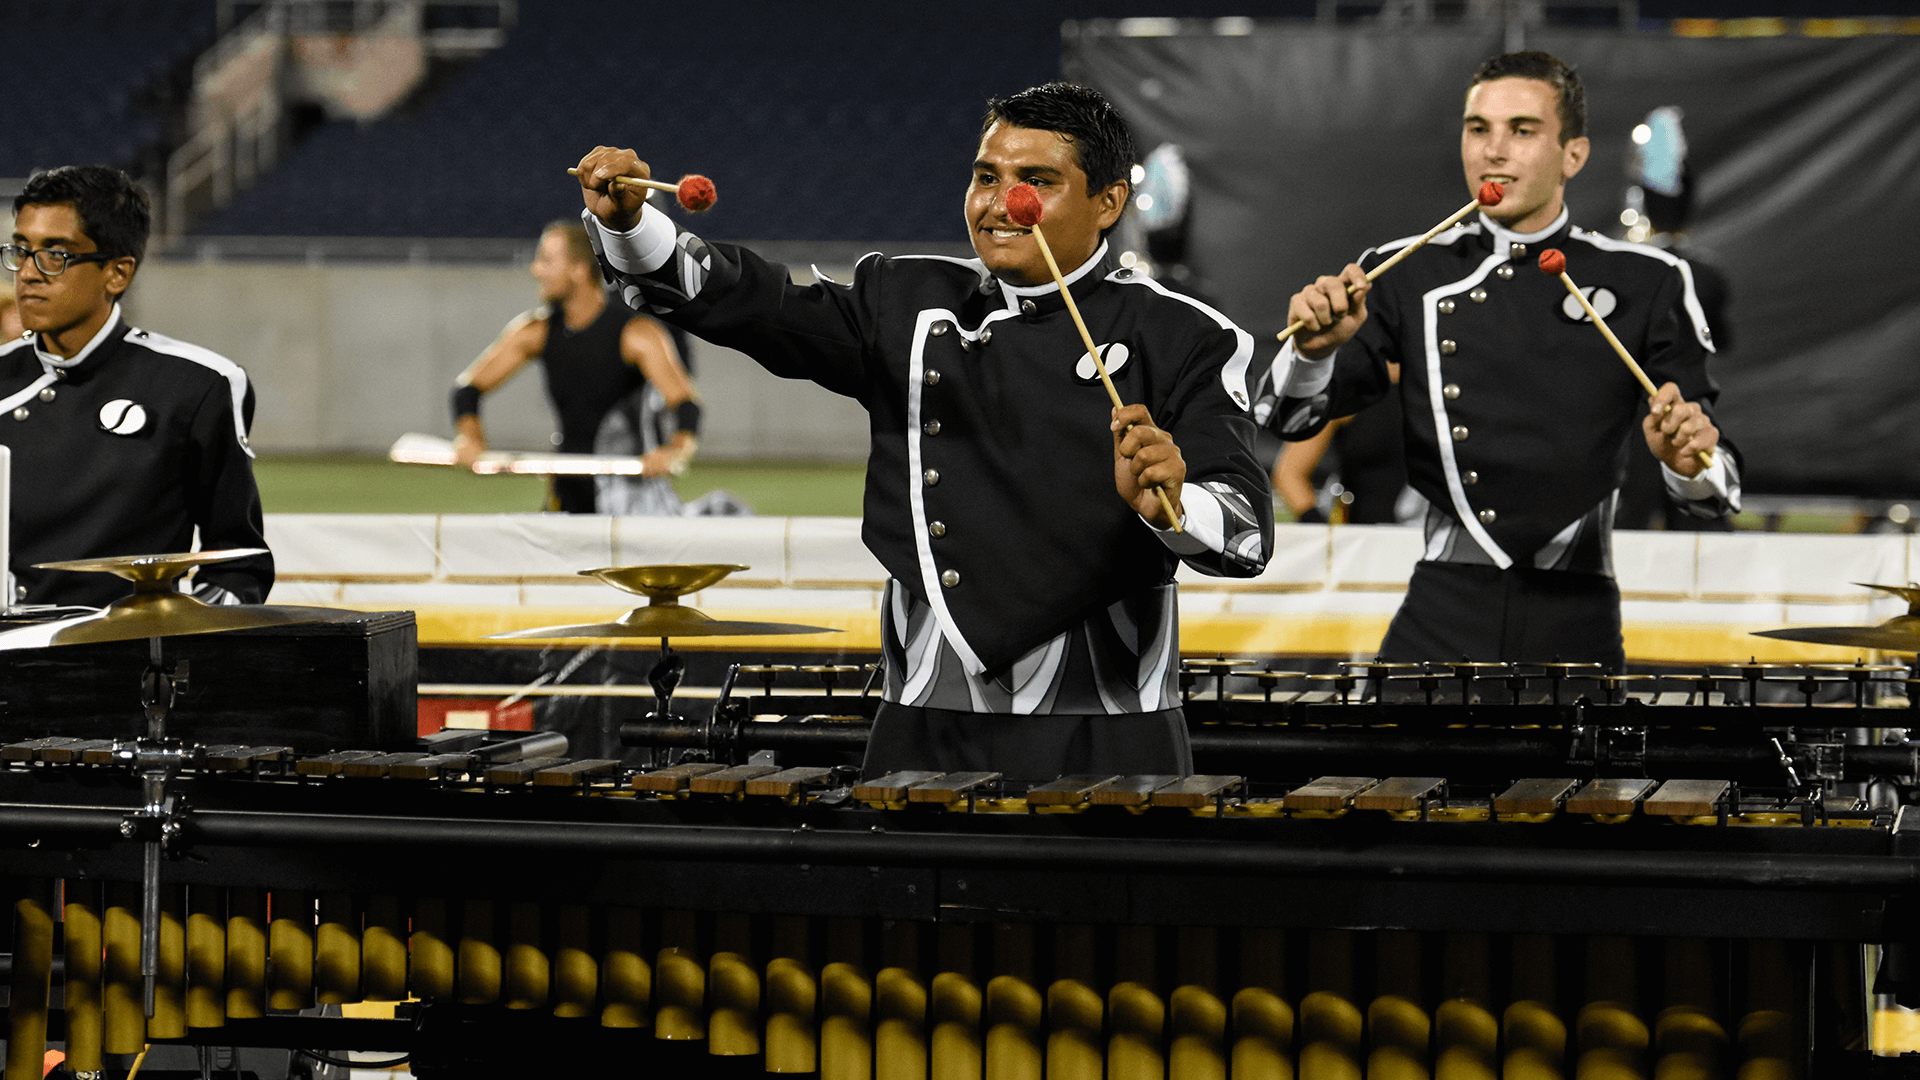 DCI Northern Kentucky